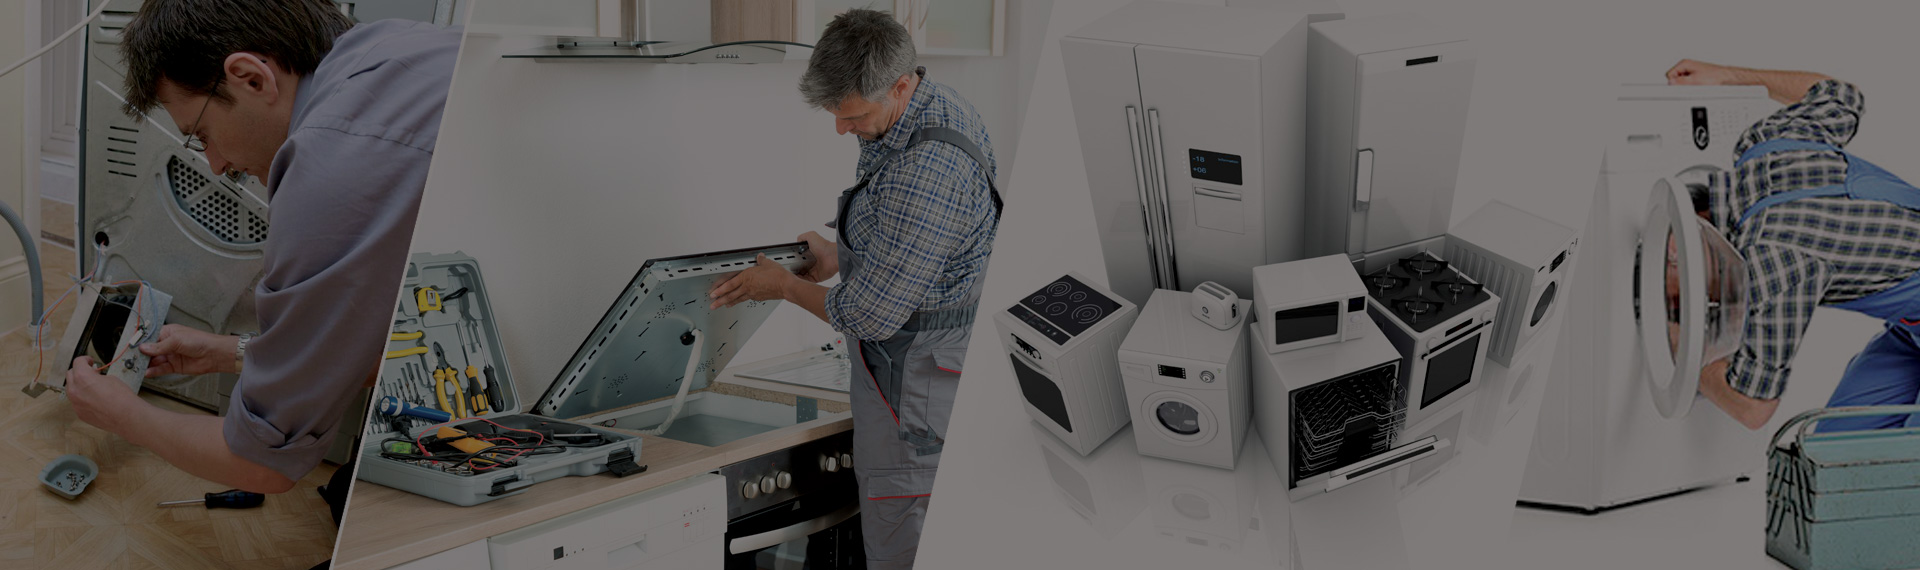 Teckrom Appliance Repair Chula Vista CA